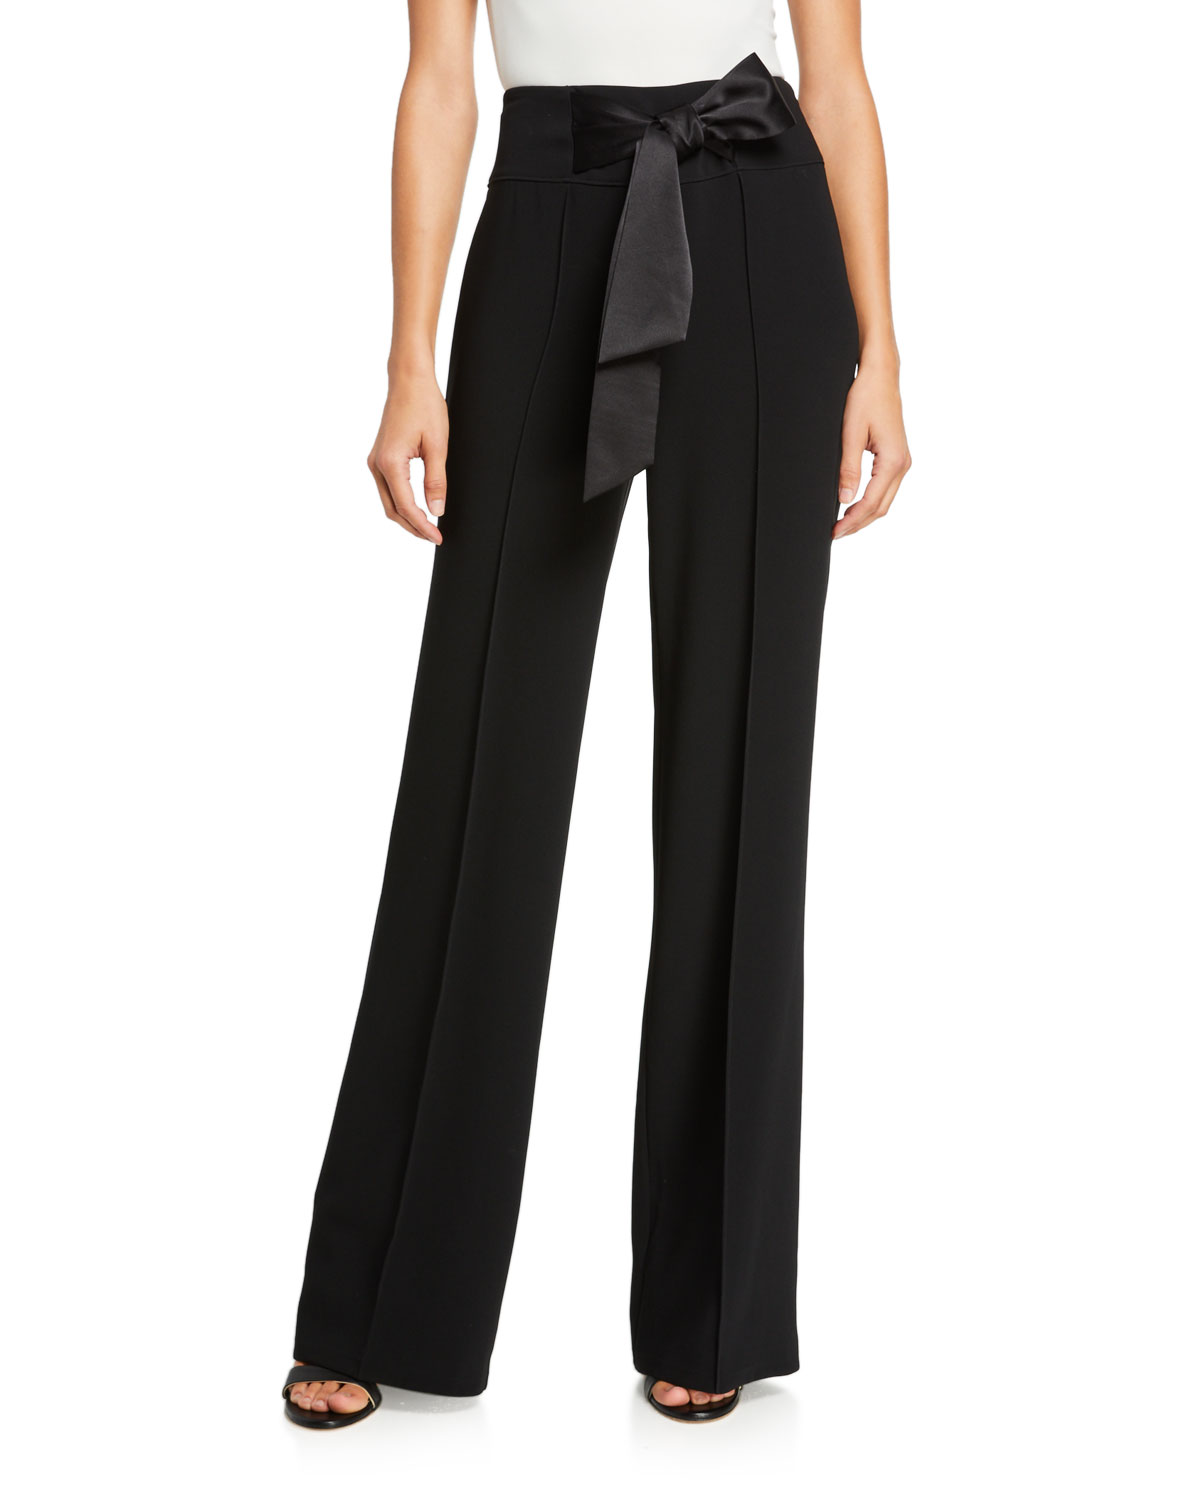 Cinq À Sept Pants ISABEL CREPE PINTUCK TIE-WAIST PANTS